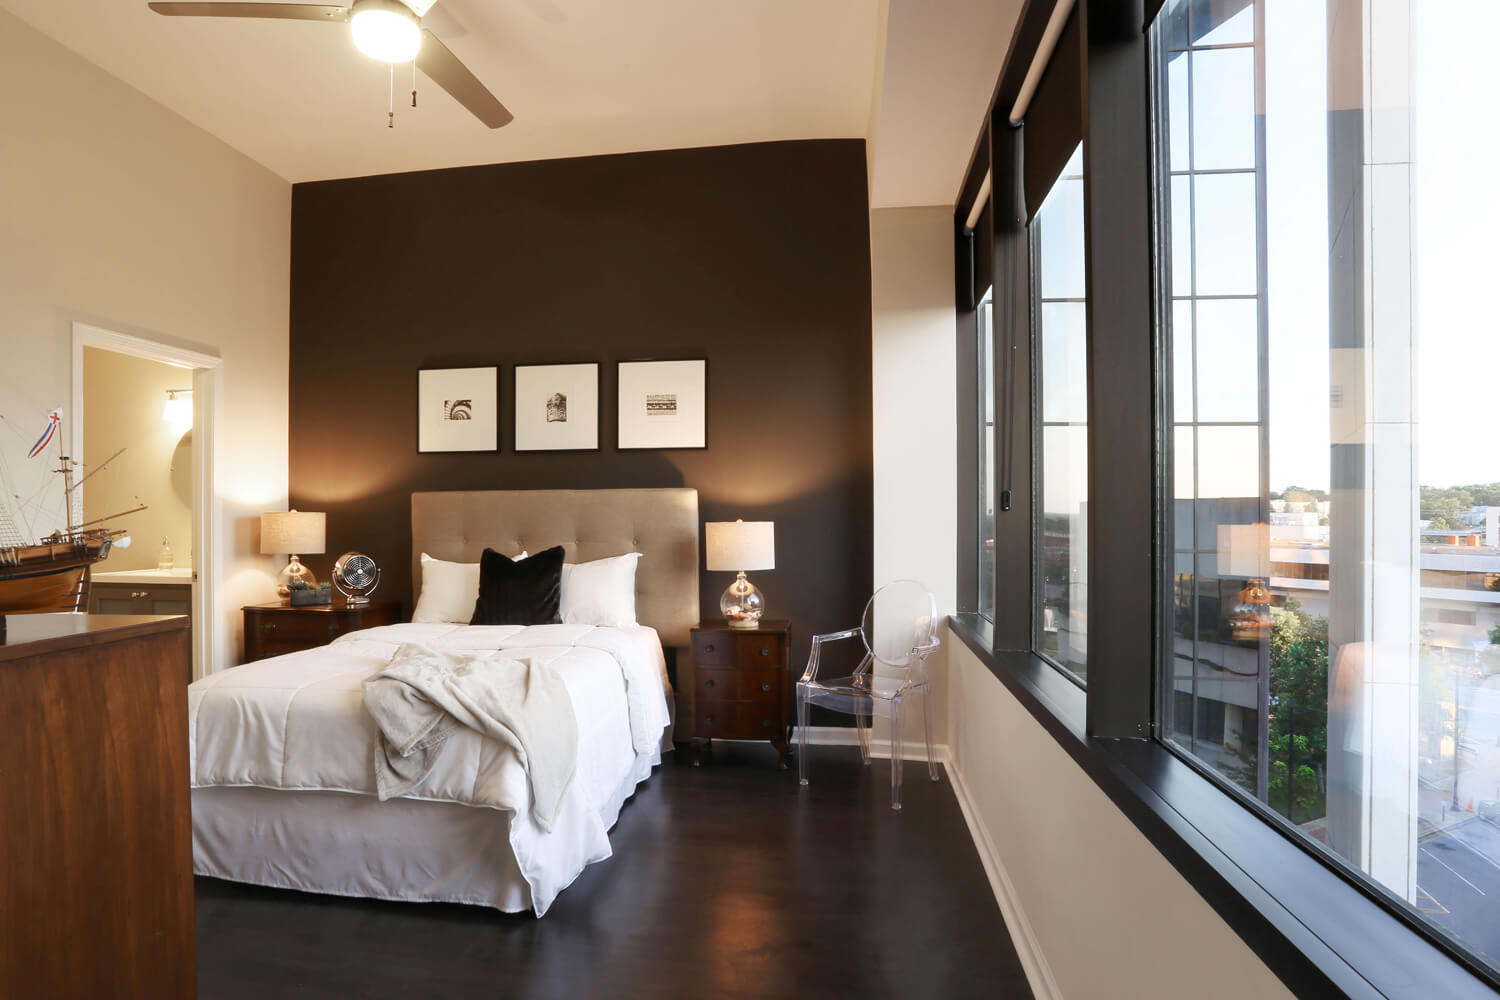 The 40 Four Building Designed by Foshee Architecture – Apartment Bedroom